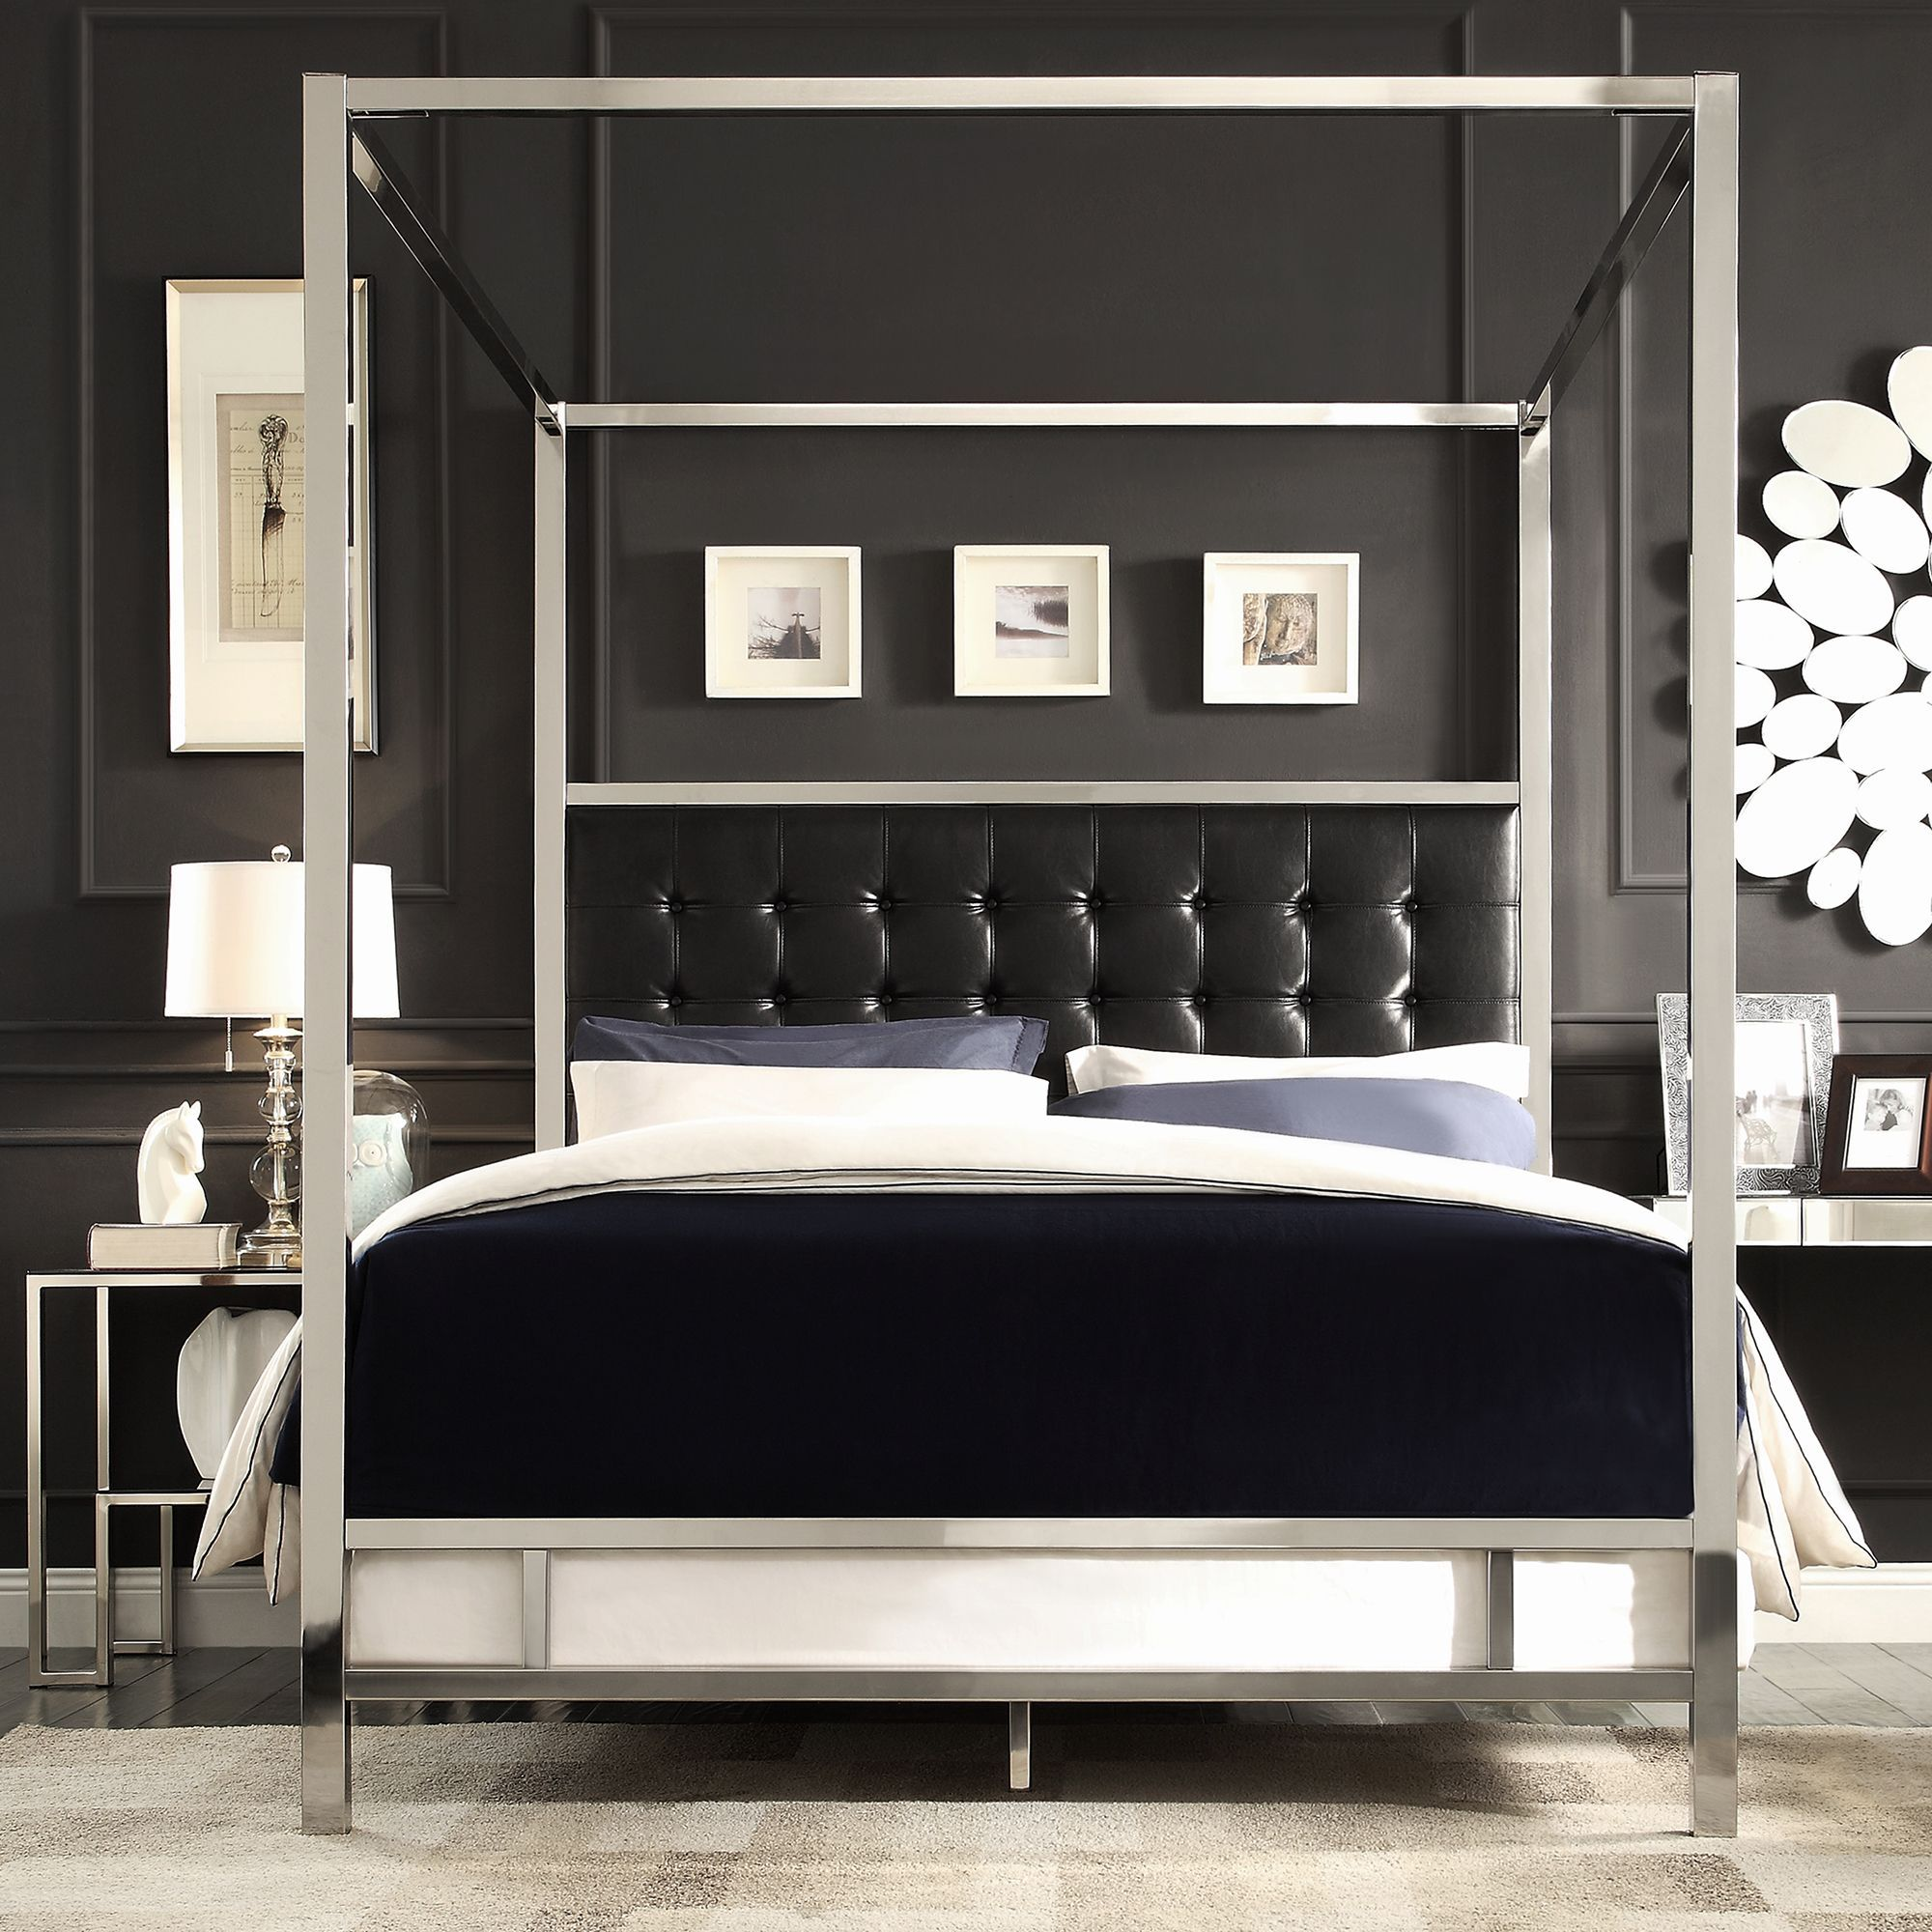 Swell Solivita Full Size Canopy Chrome Metal Poster Bed By Inspire Home Interior And Landscaping Ponolsignezvosmurscom